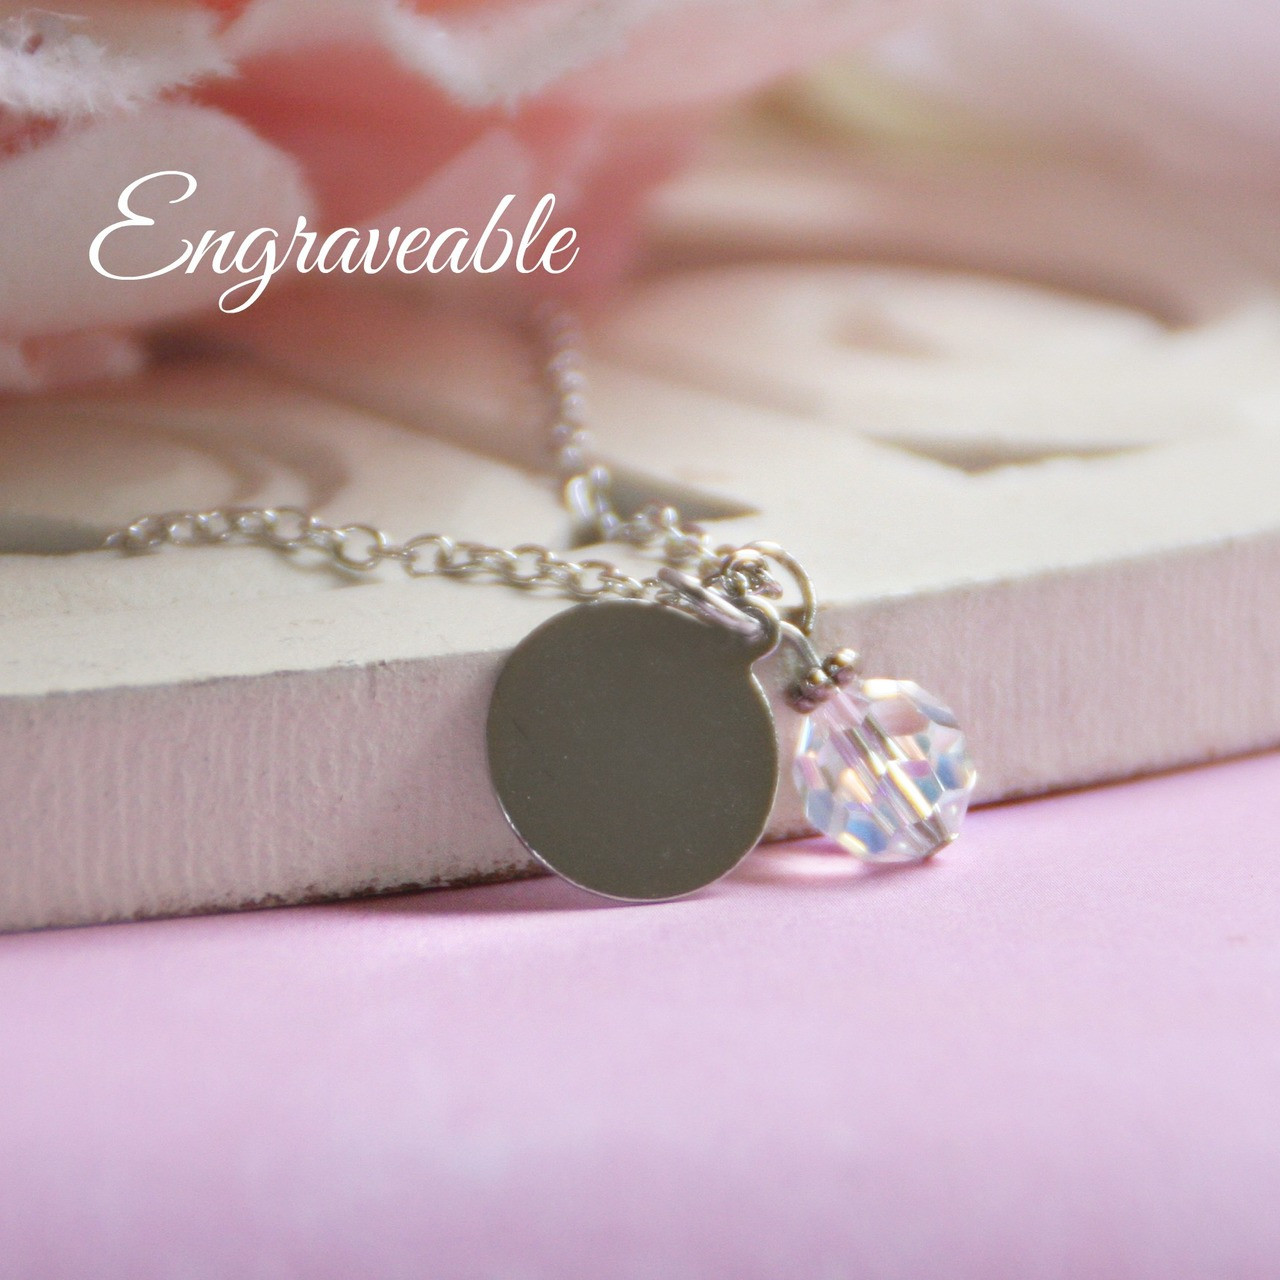 EG-2  Engraveable Stainless Disk with Crystal Drop Bead Necklace